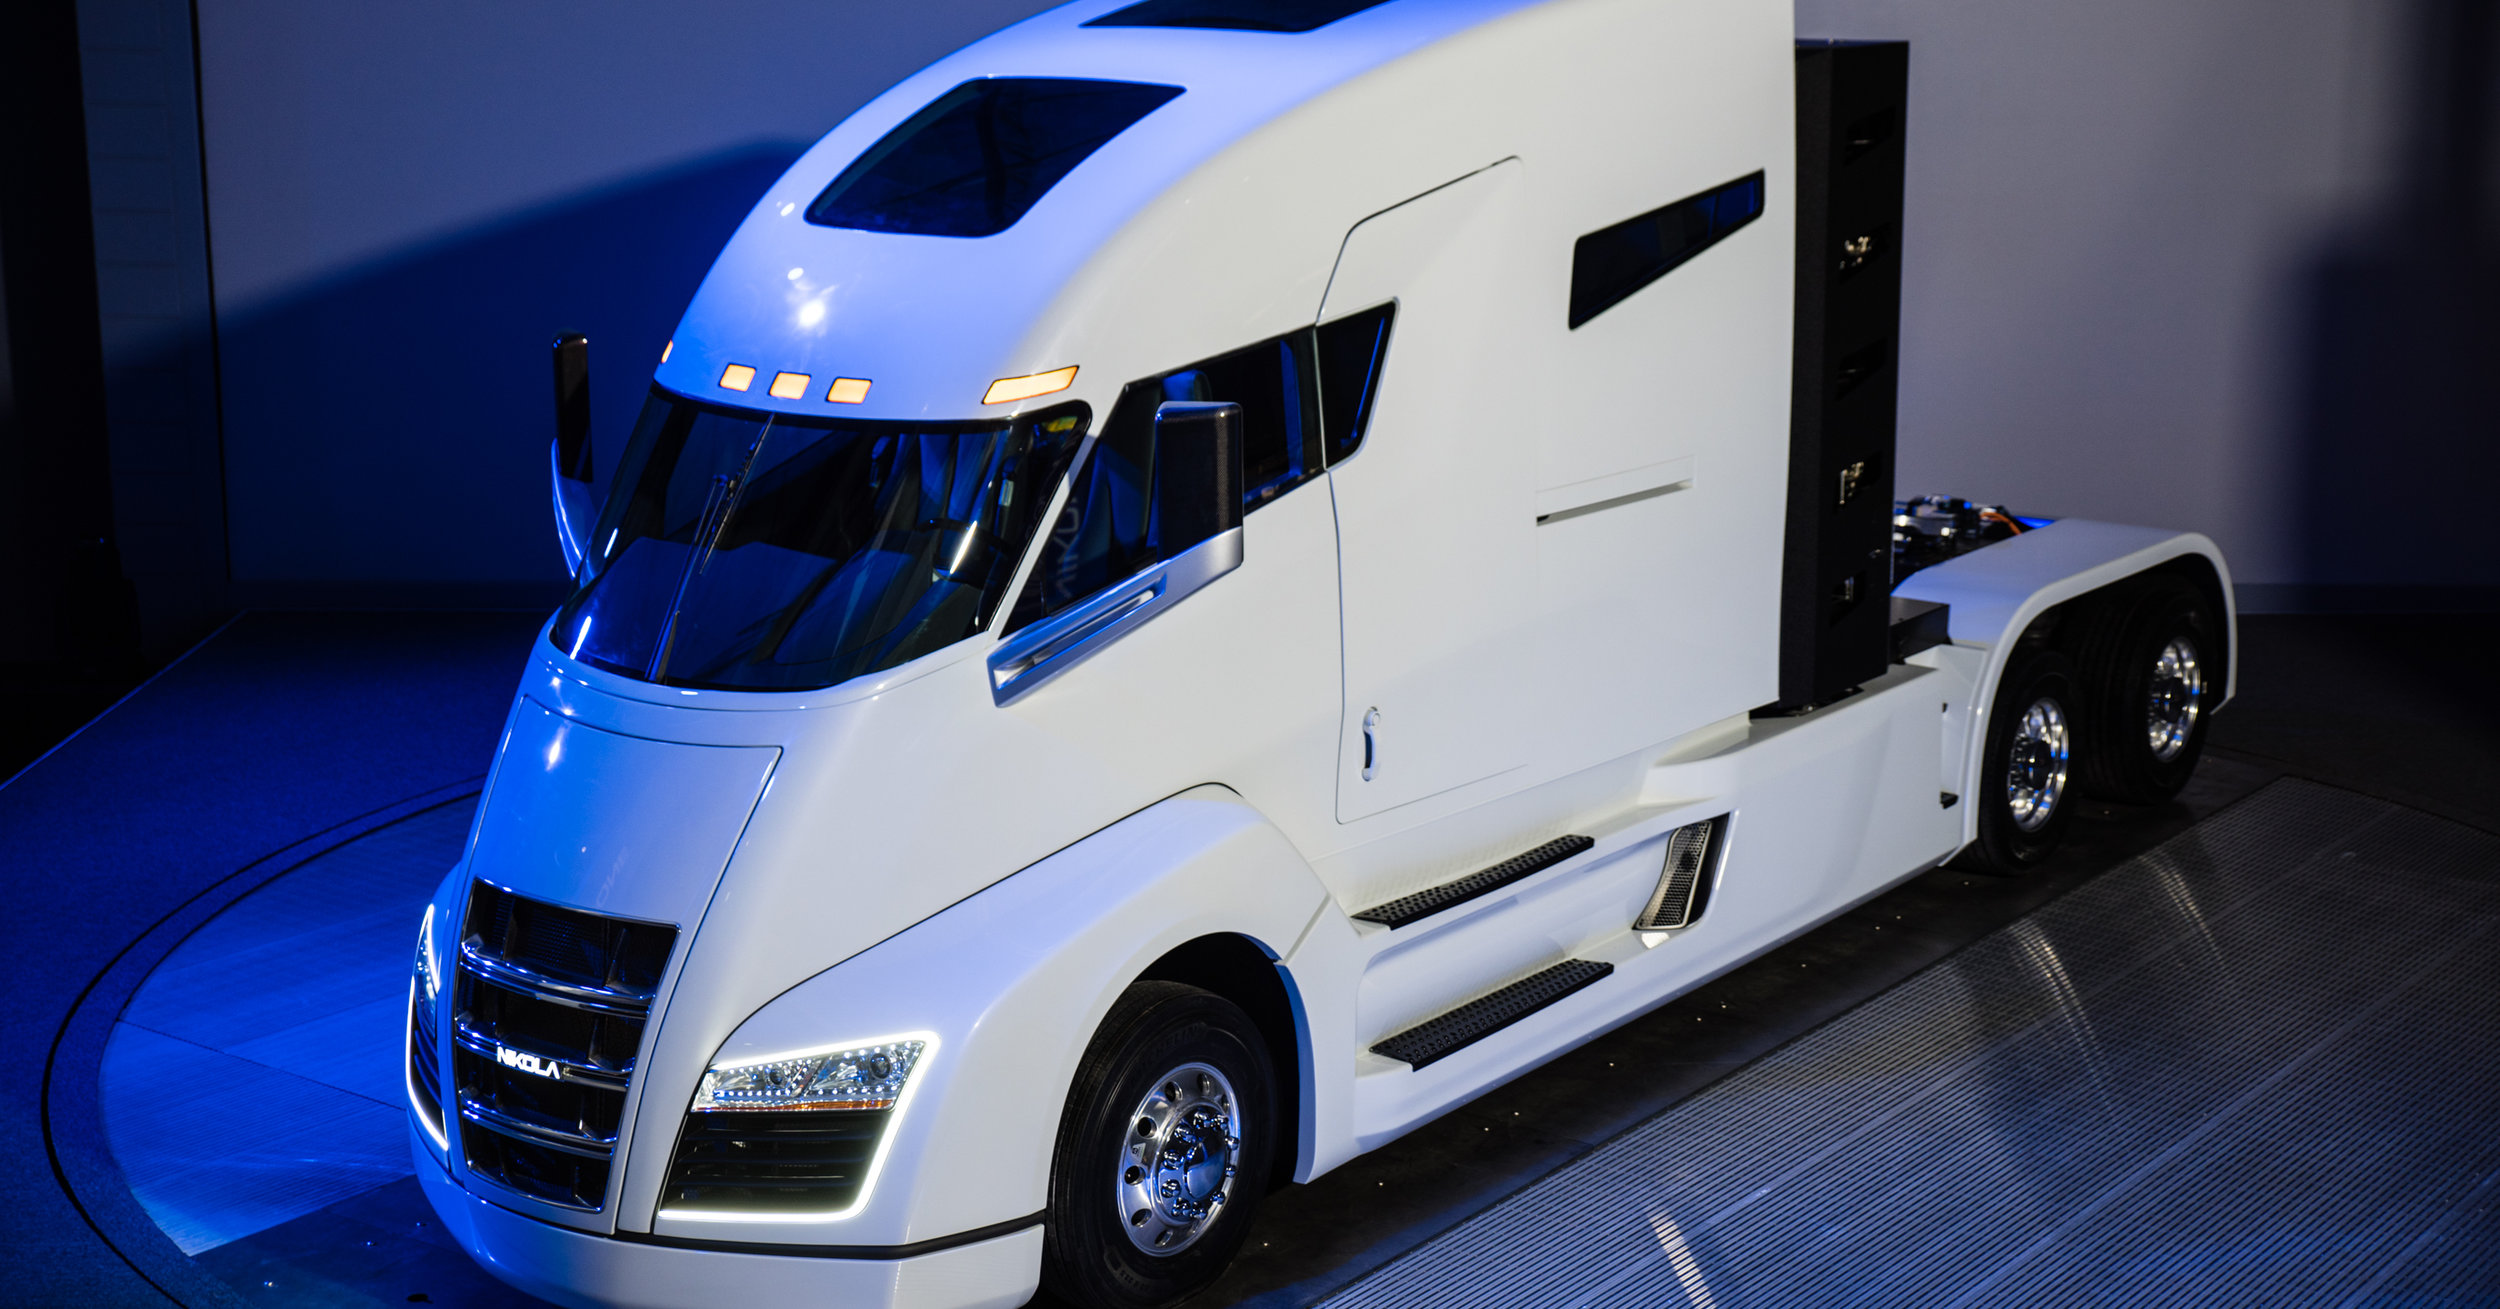 Nikola electric semi truck.